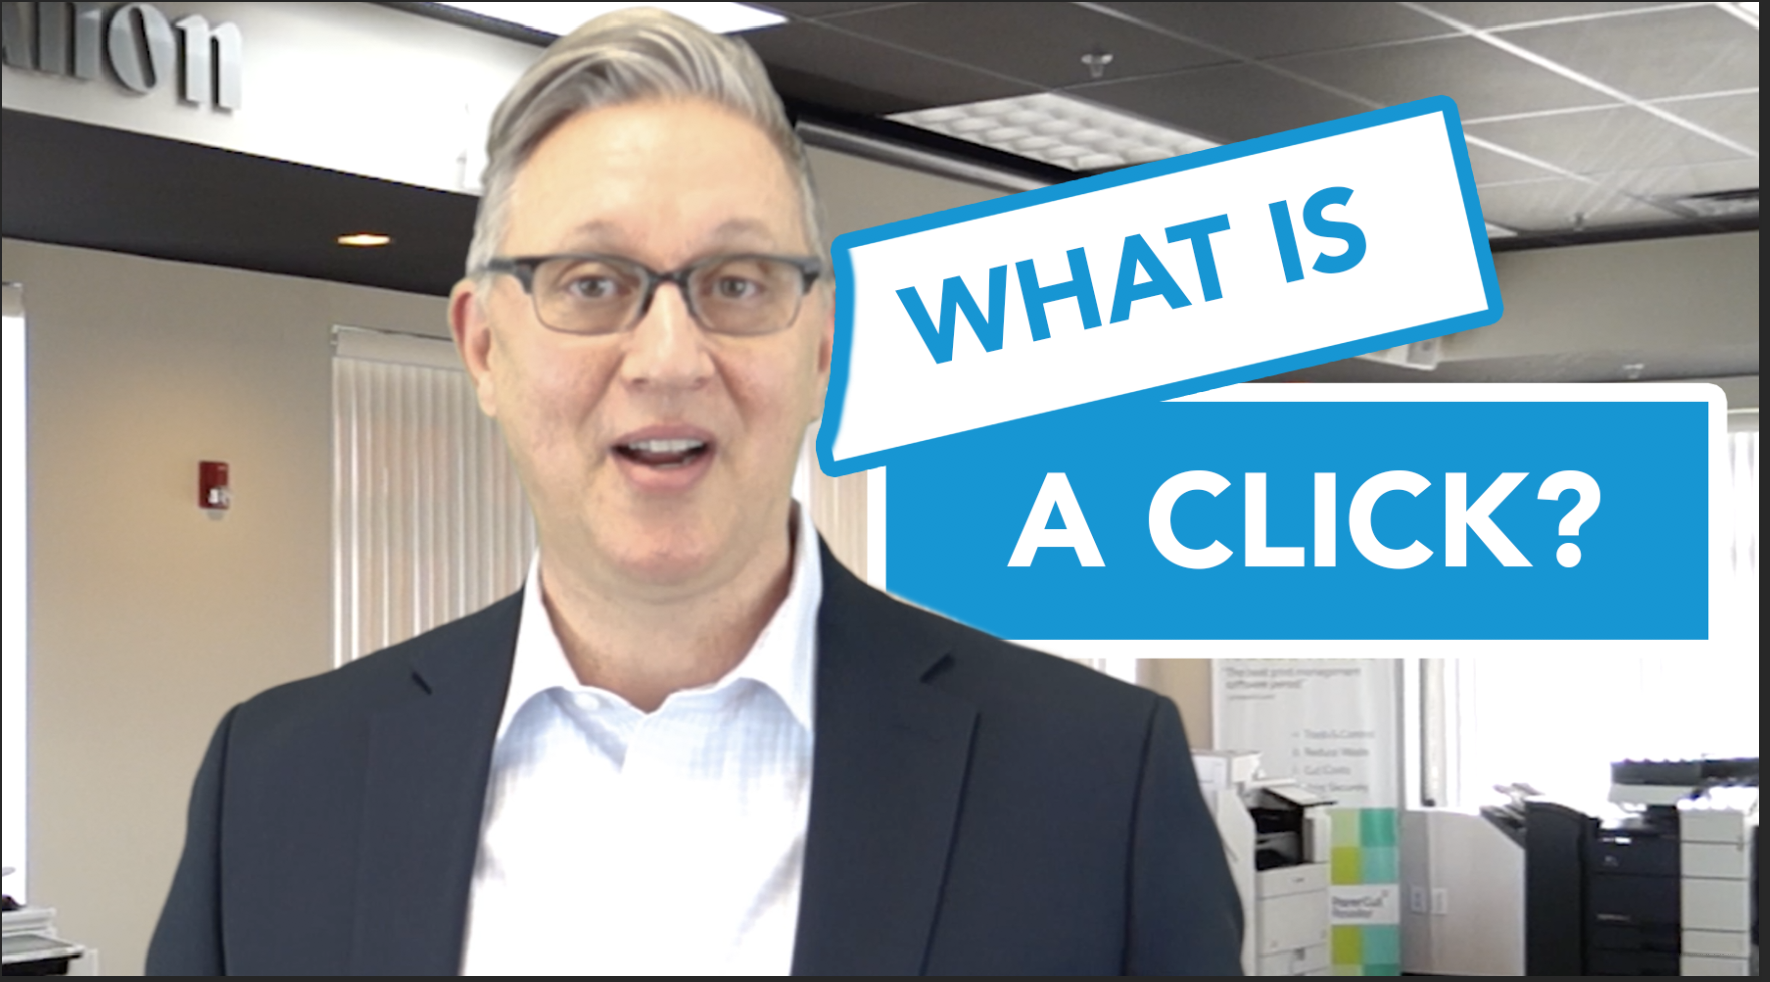 What is a click